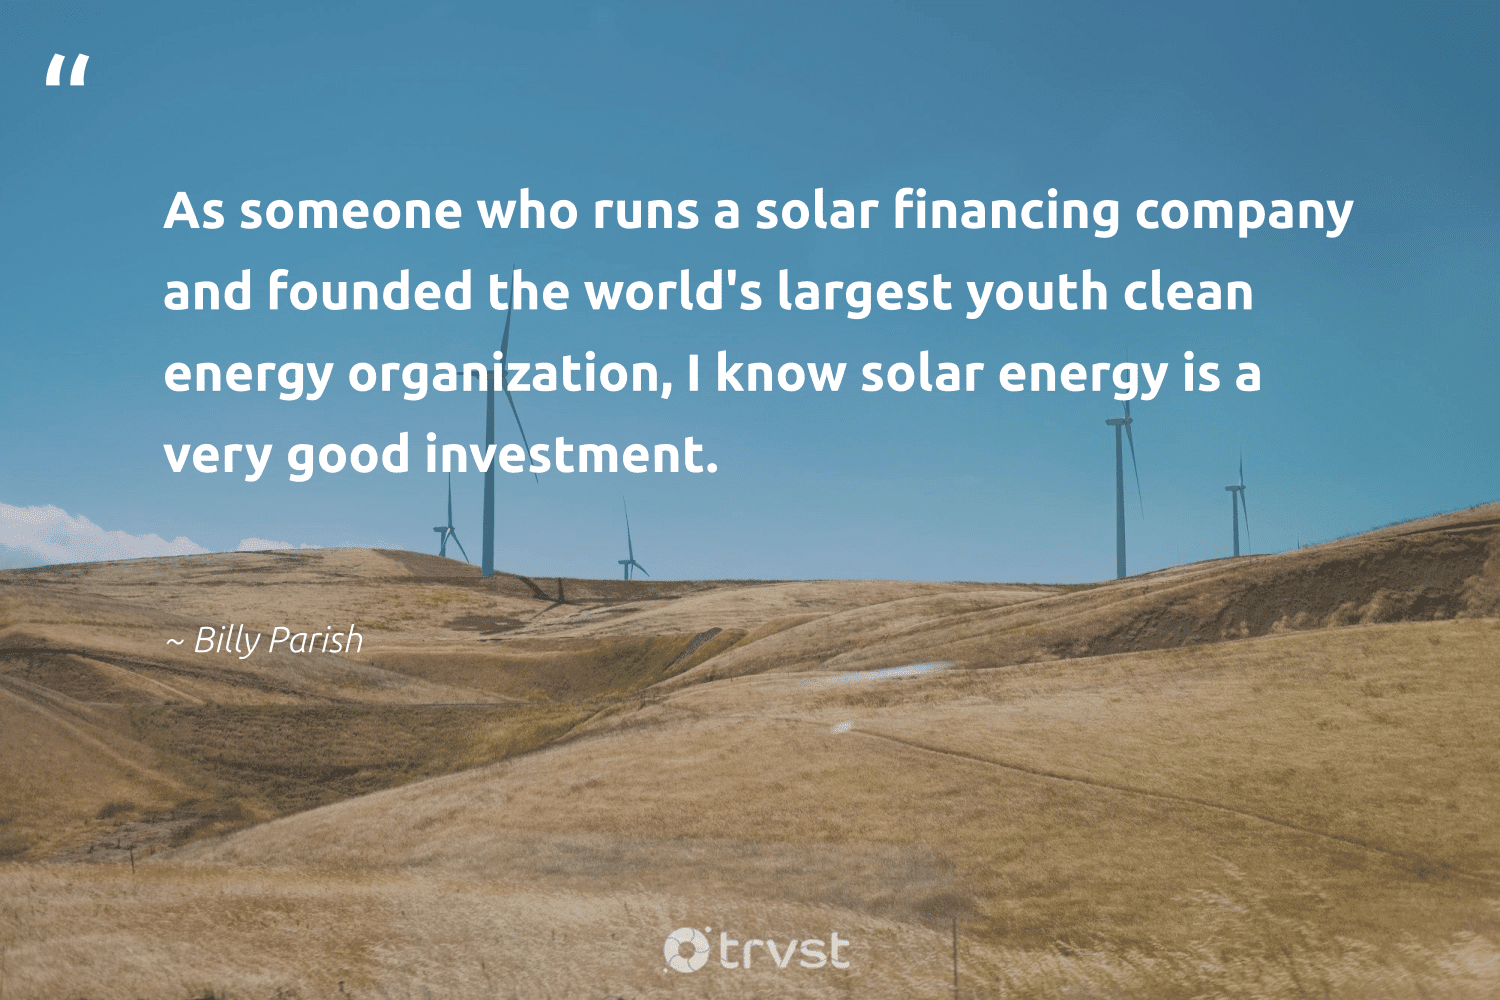 """""""As someone who runs a solar financing company and founded the world's largest youth clean energy organization, I know solar energy is a very good investment.""""  - Billy Parish #trvst #quotes #solar #energy #cleanenergy #solarenergy #solarfarms #affordable #climateaction #planetearth #bethechange #solarlife"""